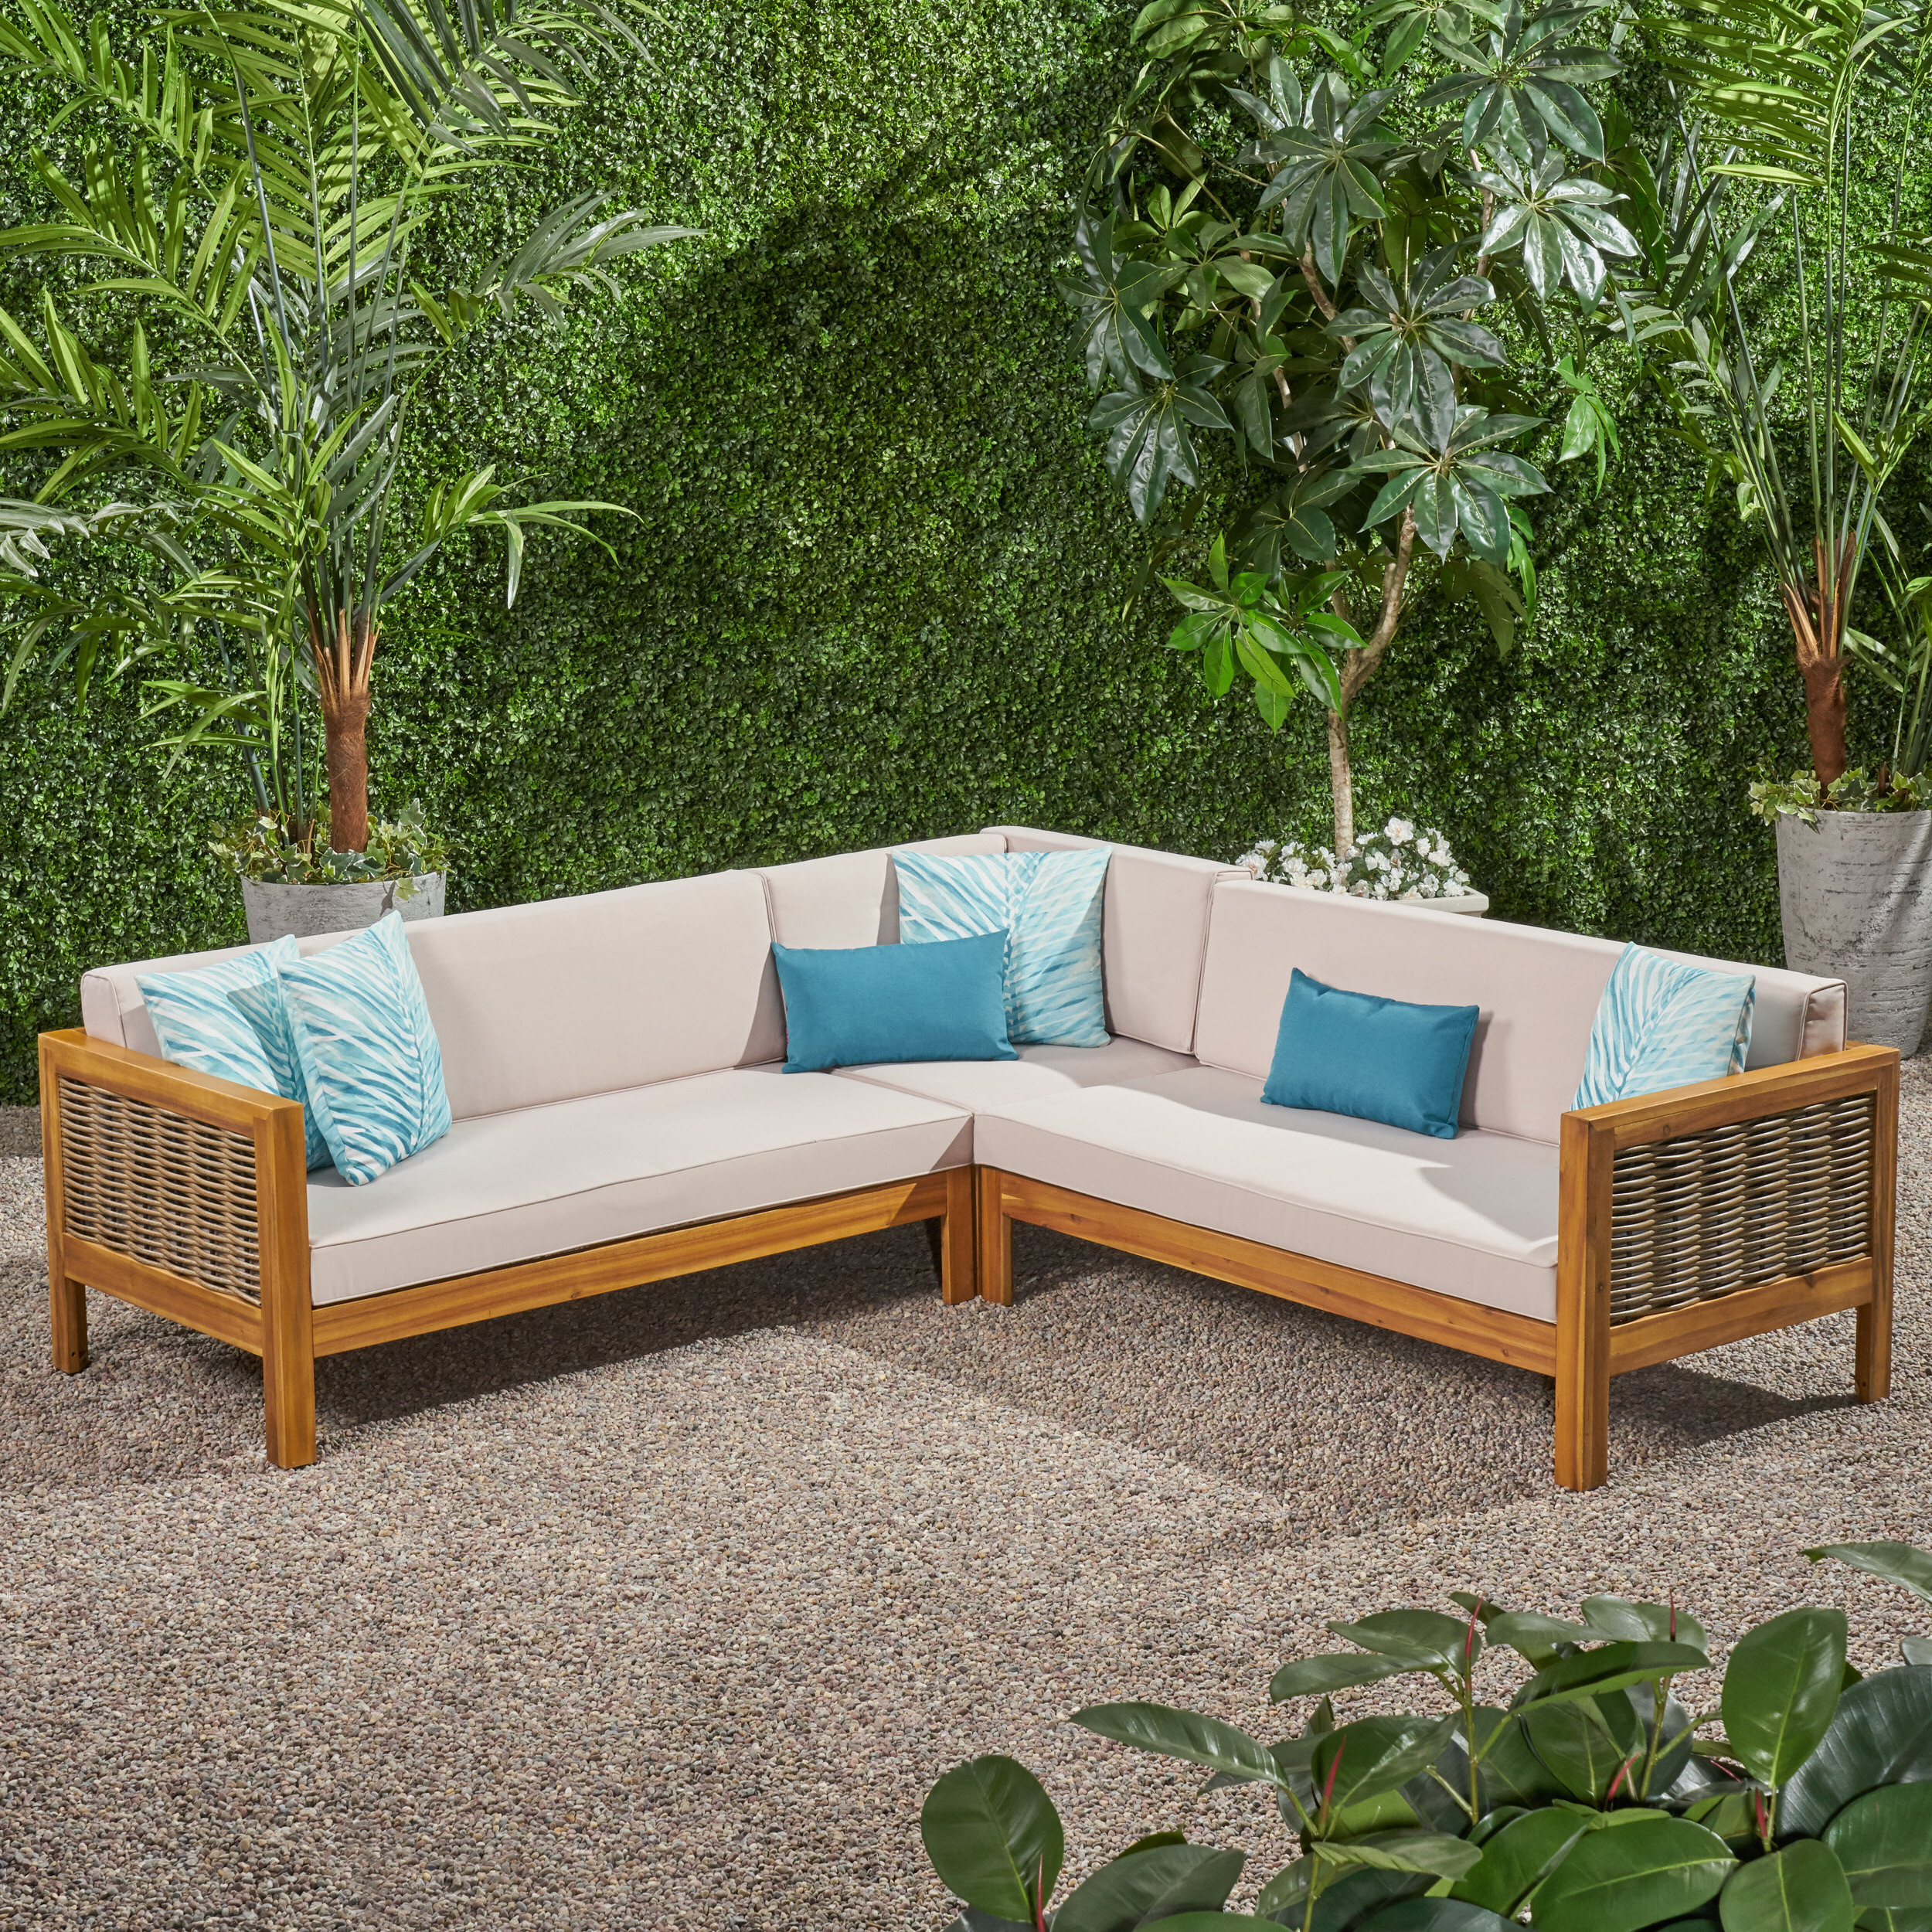 Nolen Patio Sectionals With Cushions Regarding Recent Kennison Patio Sectional With Cushions (Gallery 12 of 20)